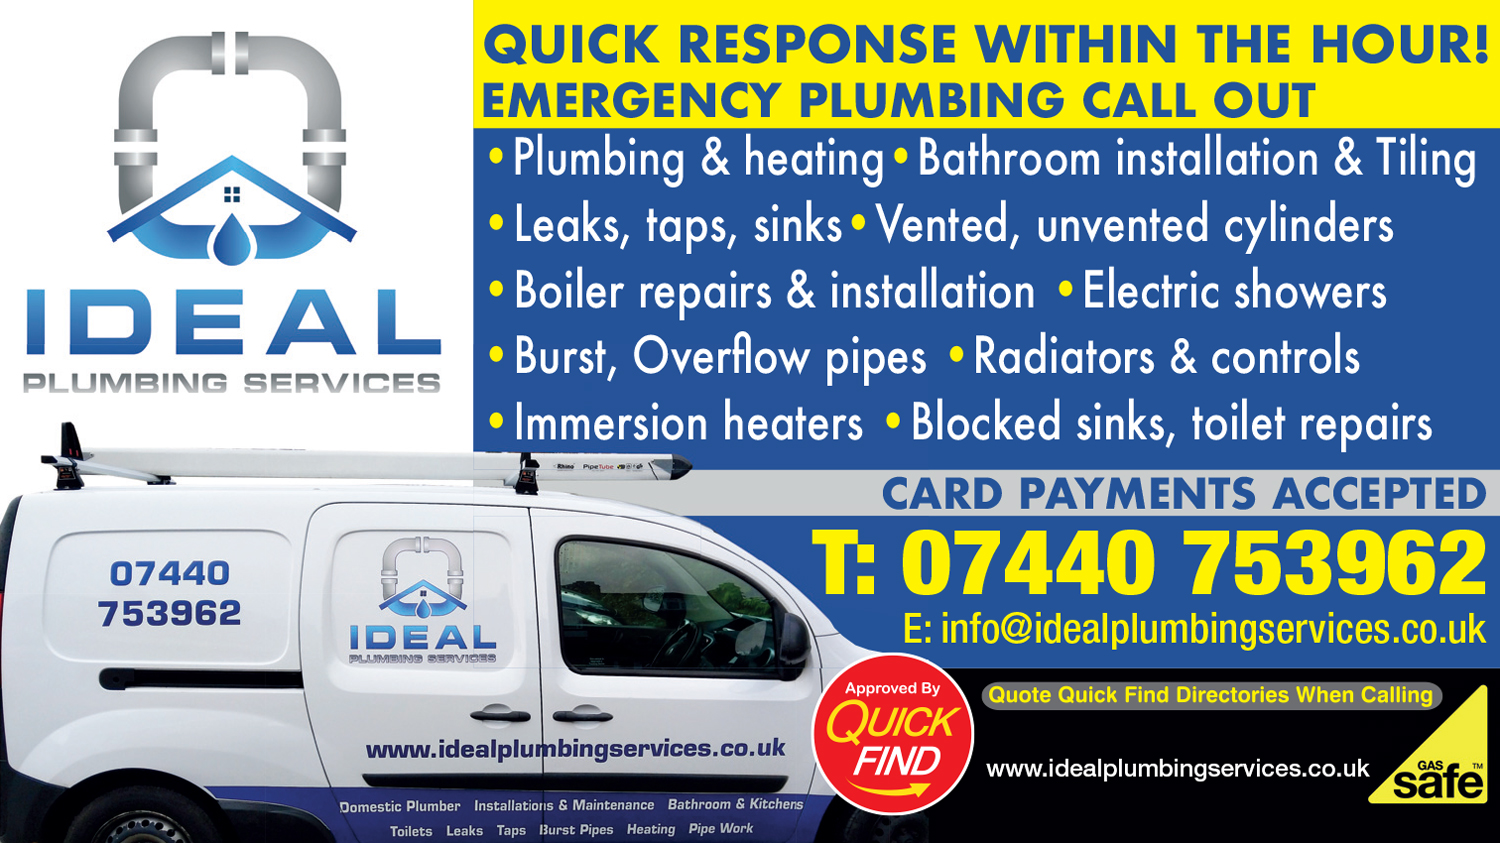 Ideal Plumbing Services